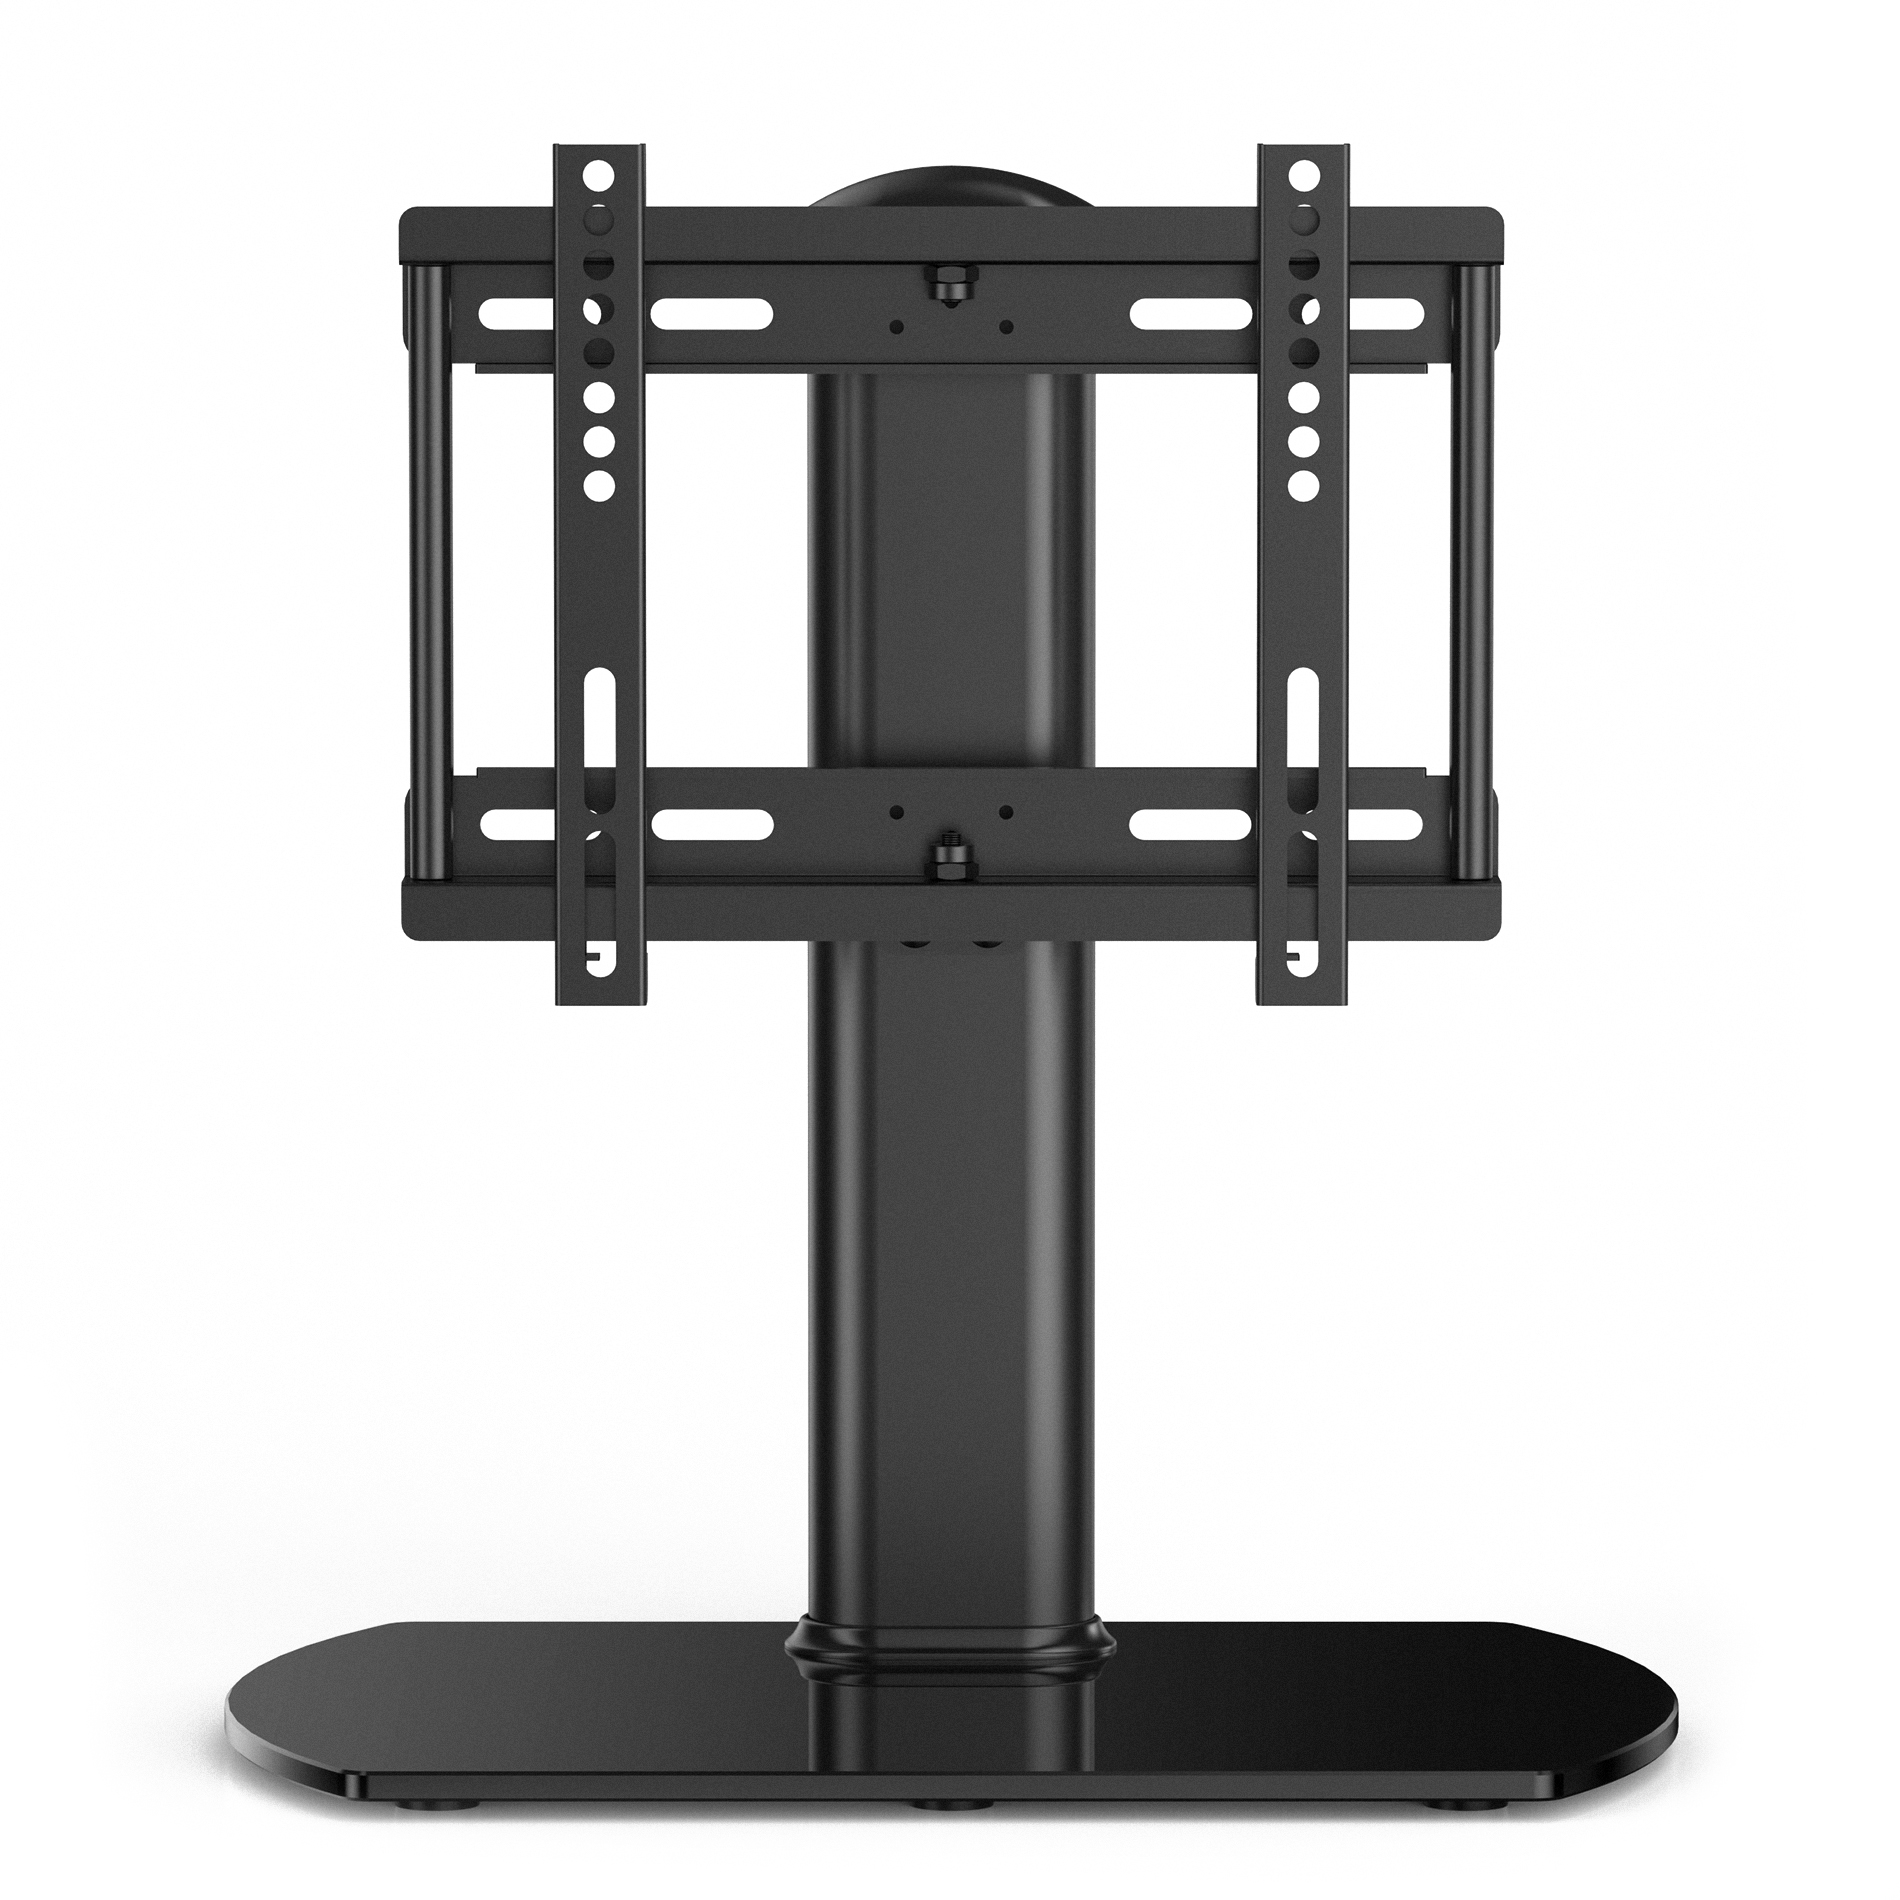 lg tv base replacement. fitueyes universal tv stand tabletop base with swivel mount for 27 to 37 inch samsung lg tv replacement p